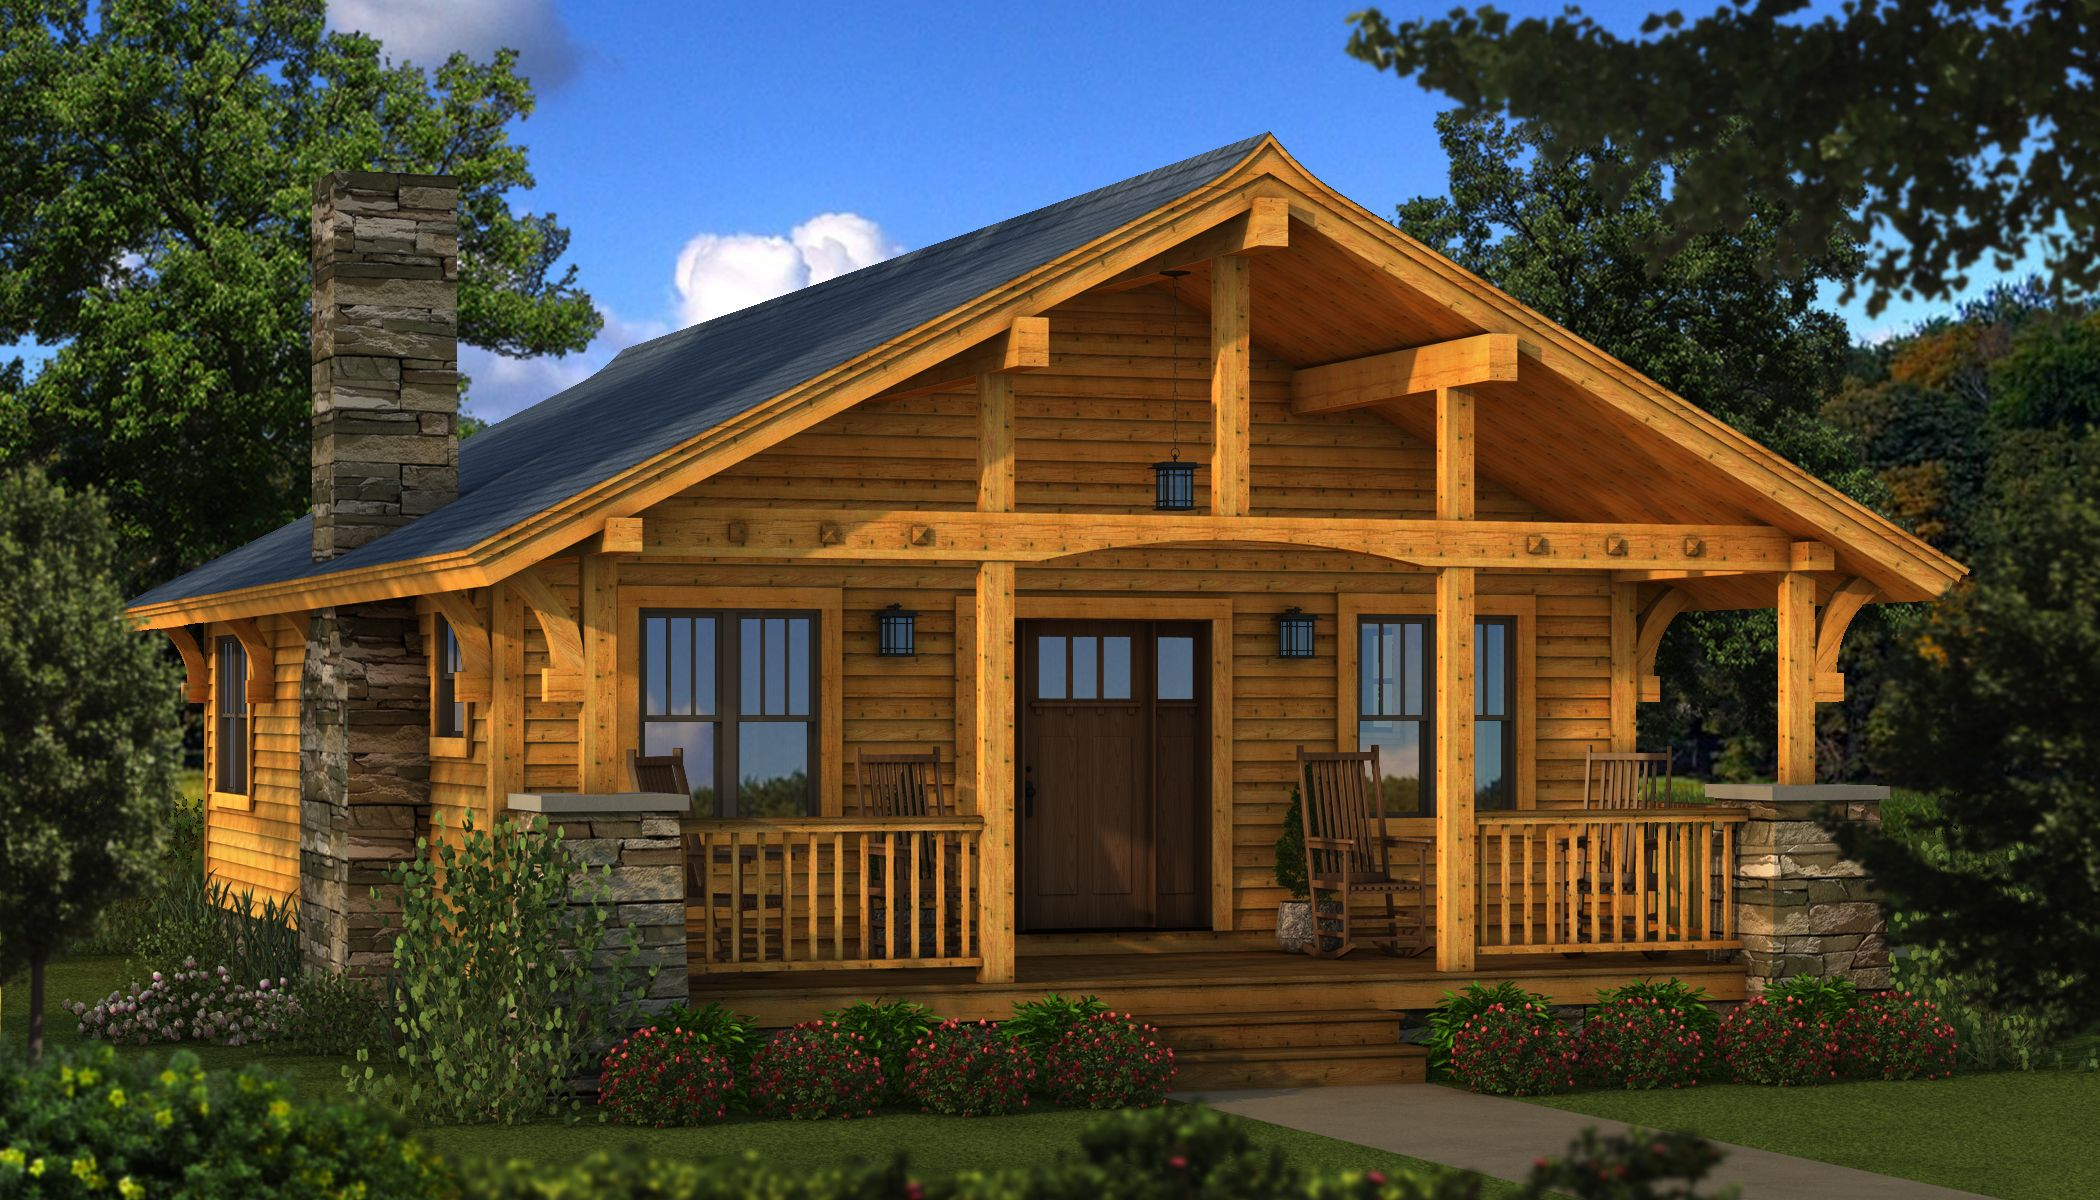 Bungalow 2 Front Elevation Southland Log Homes Cabin Kit Homes Log Cabin Floor Plans Small Log Homes